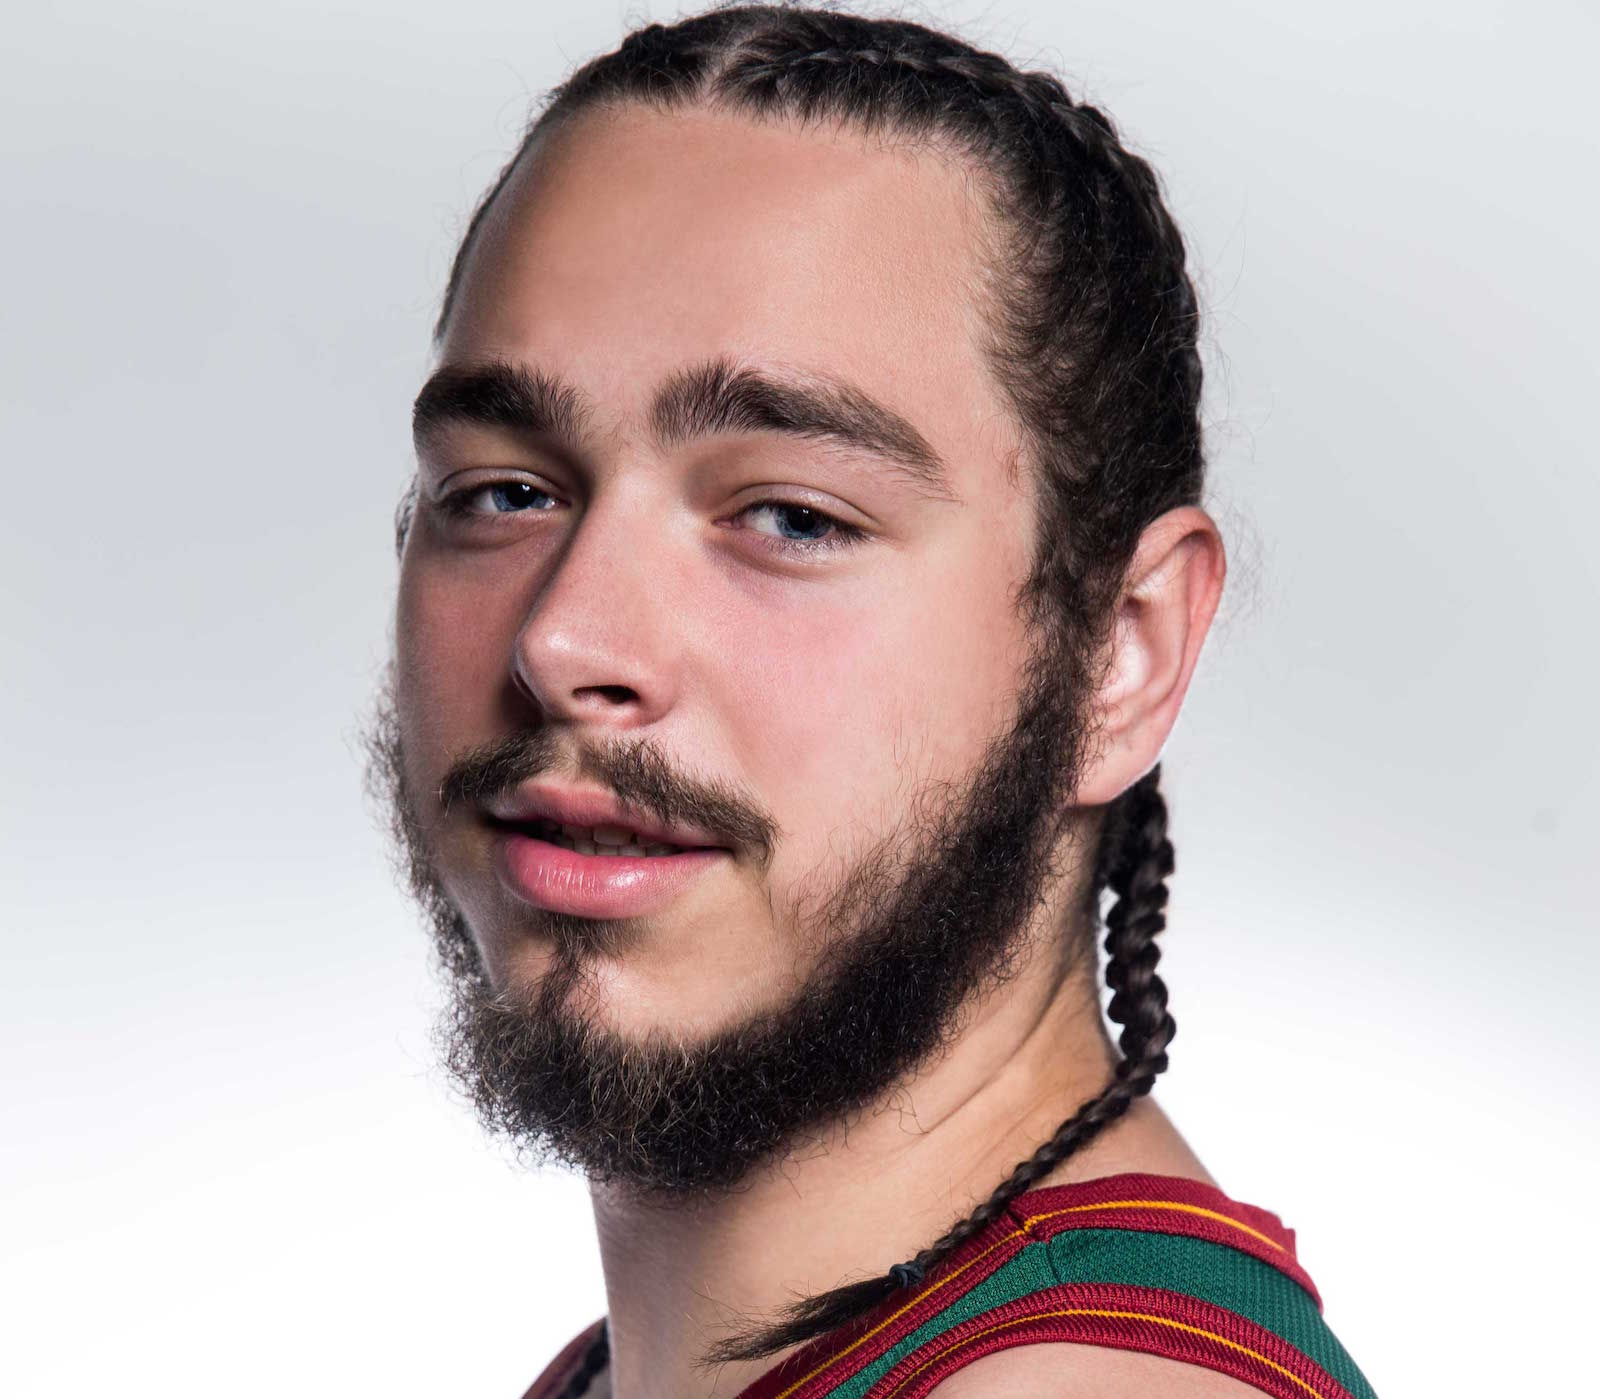 luisa lenzi, music, post malone, new album, country, austin post ,white inversion, stoney